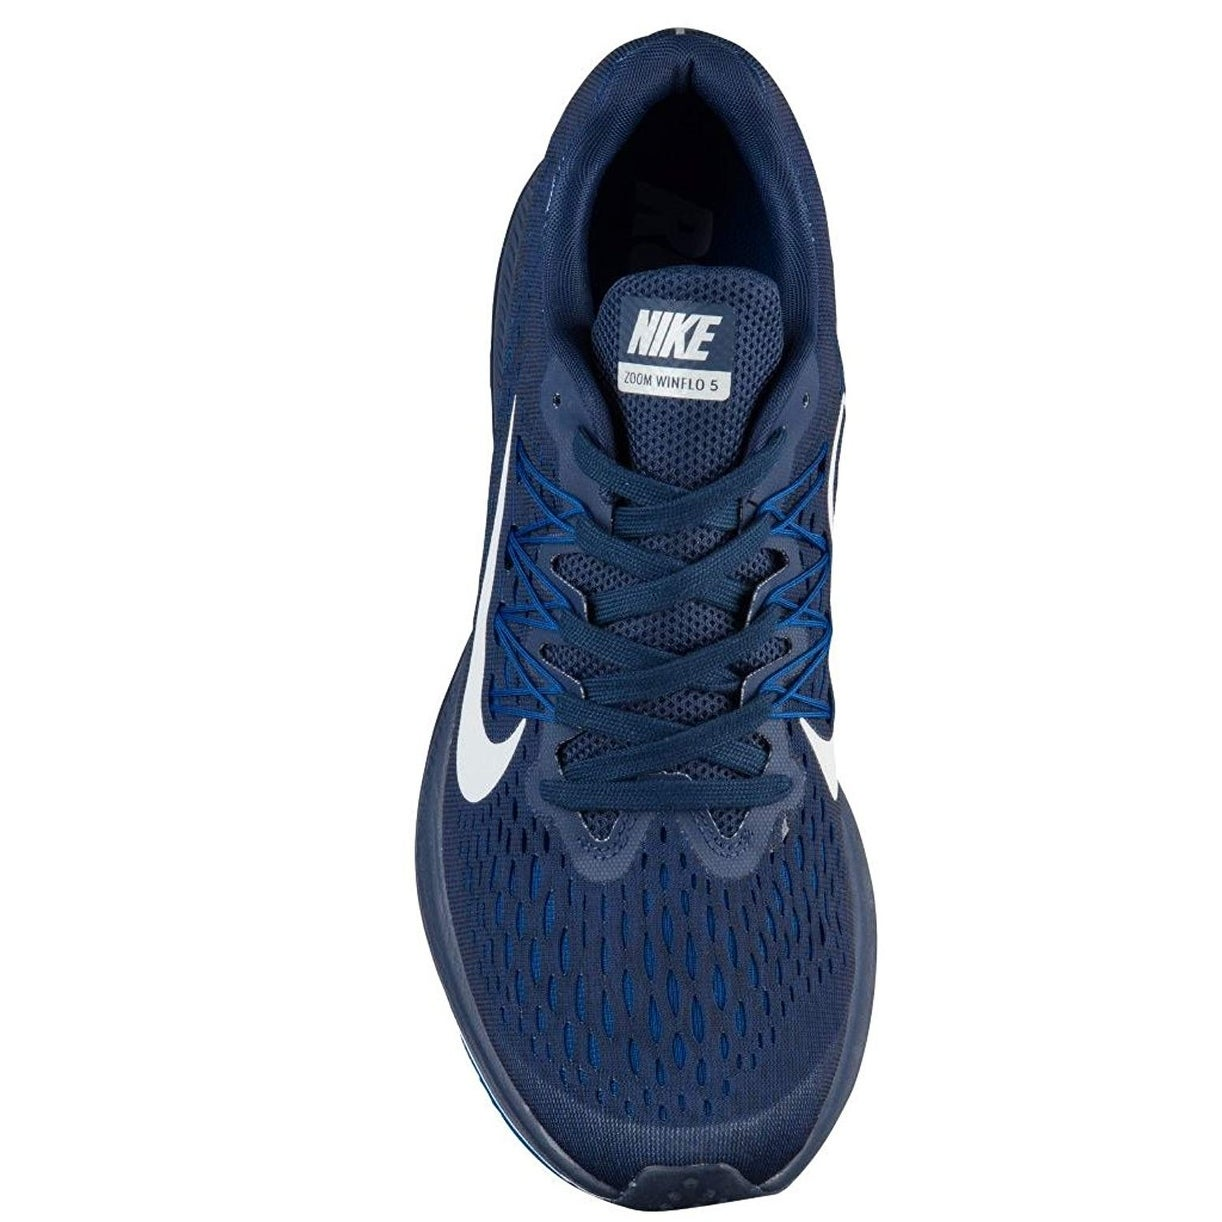 17a1d043a3124 Shop Nike Zoom Winflo 5 Mens Aa7406-401 Size 11 - Free Shipping Today -  Overstock - 25661402